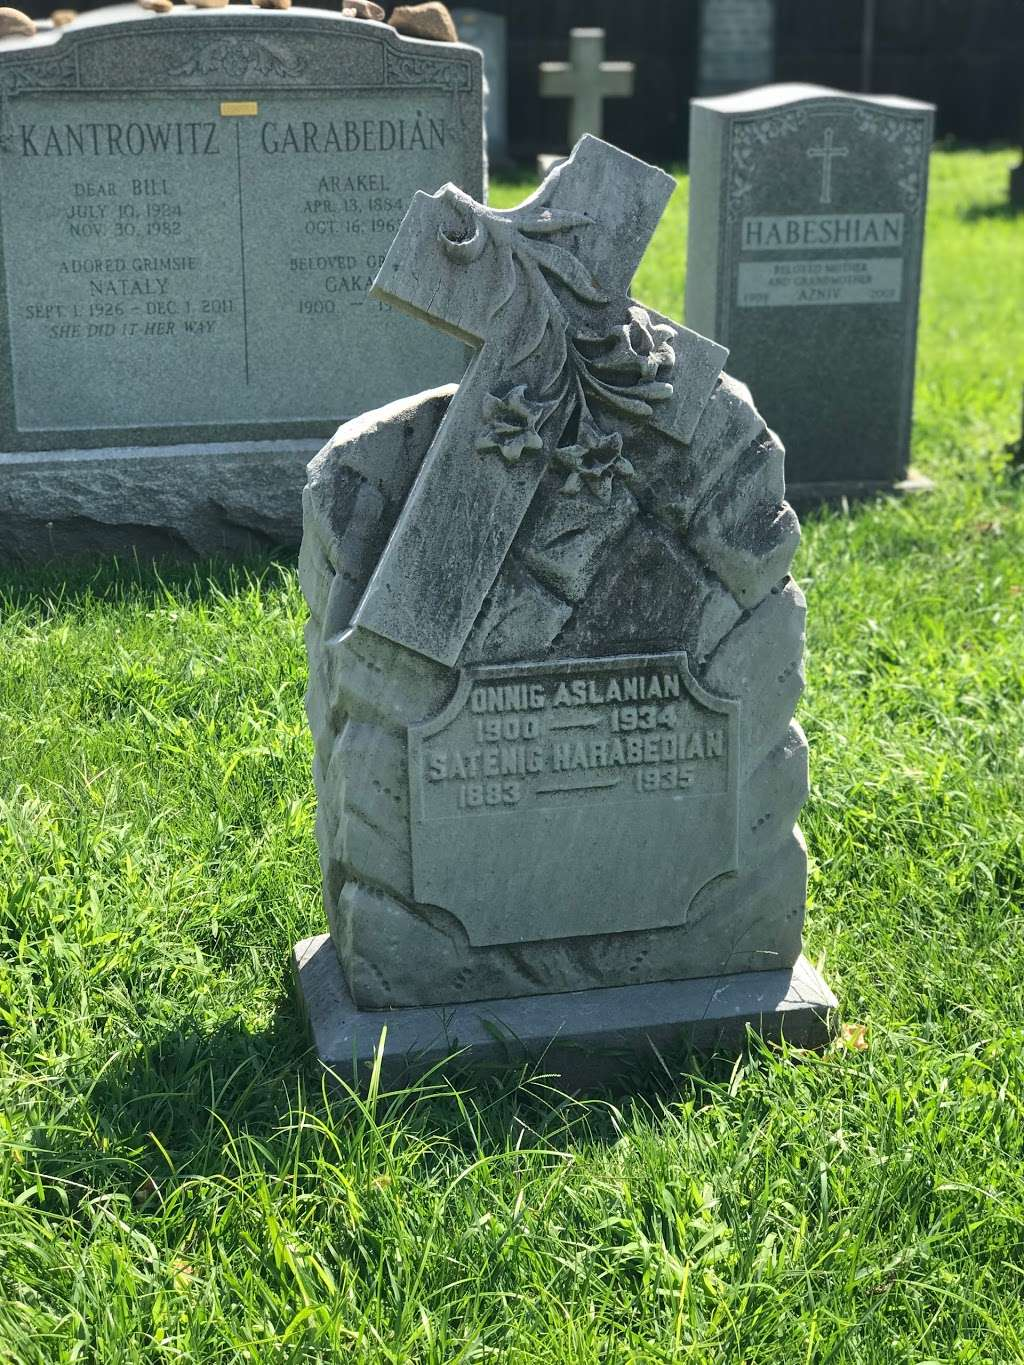 Cedar Grove Cemetery - cemetery  | Photo 2 of 6 | Address: 130-04 Horace Harding Expy, Flushing, NY 11367, USA | Phone: (718) 939-2041